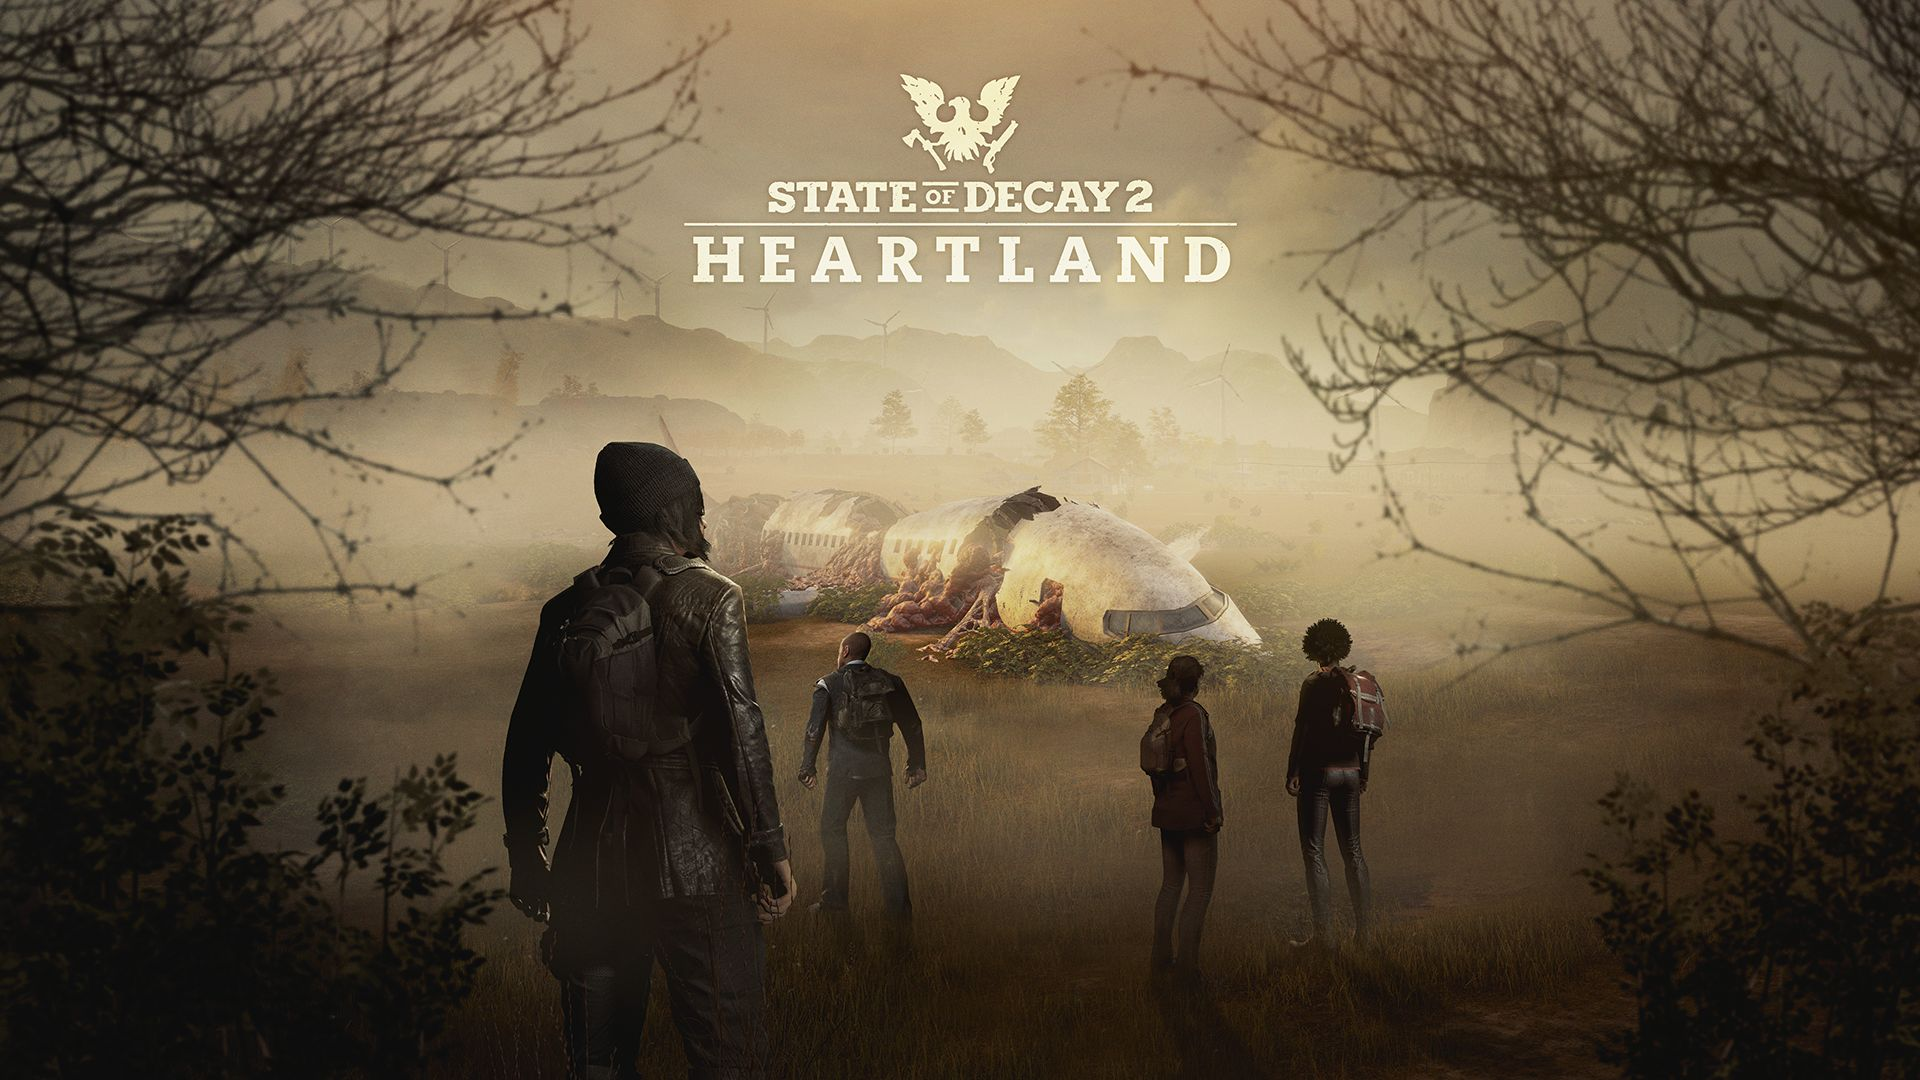 State of Decay 2: Heartland